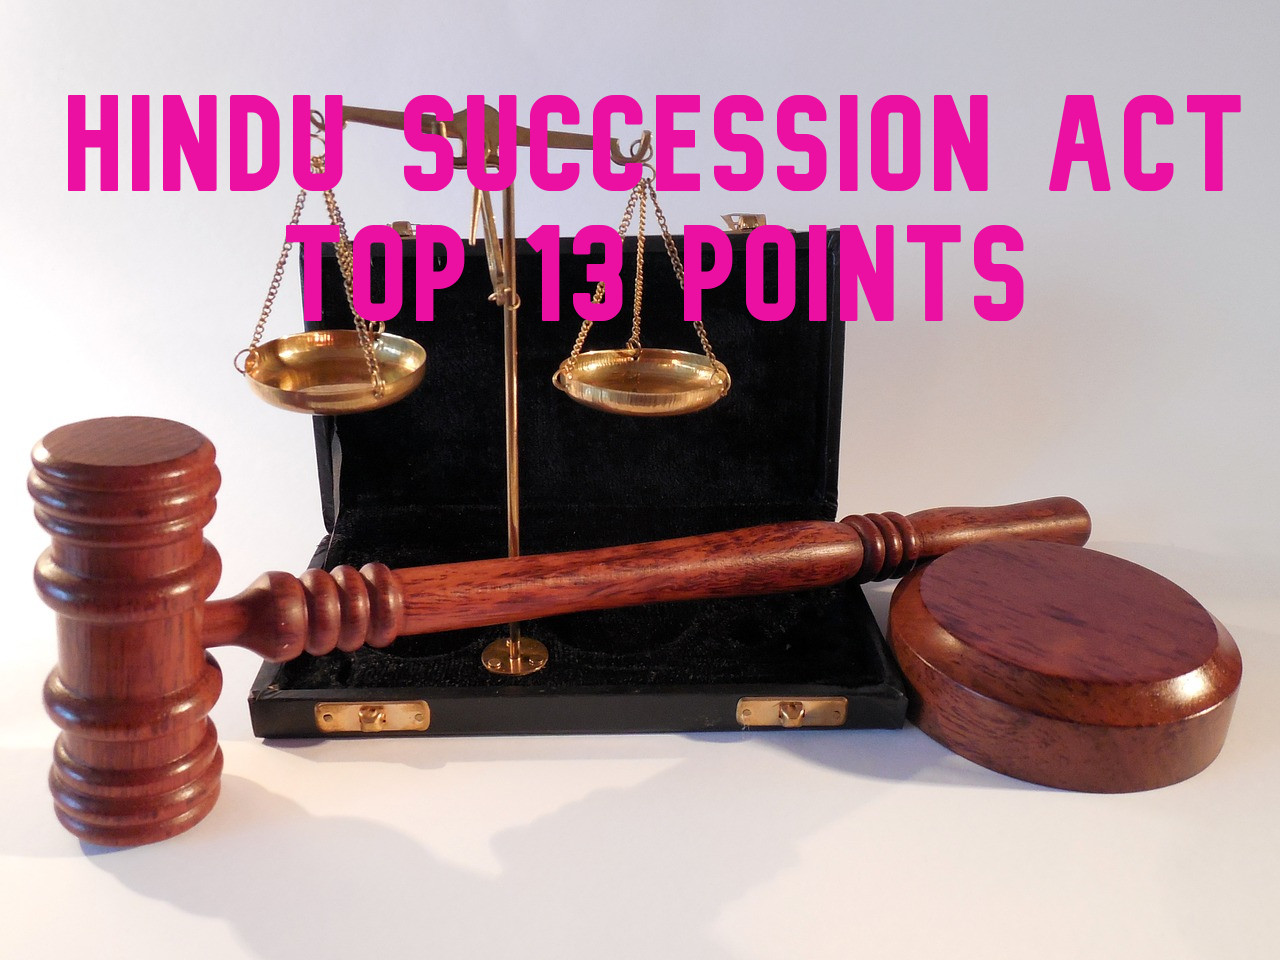 #indian succession act